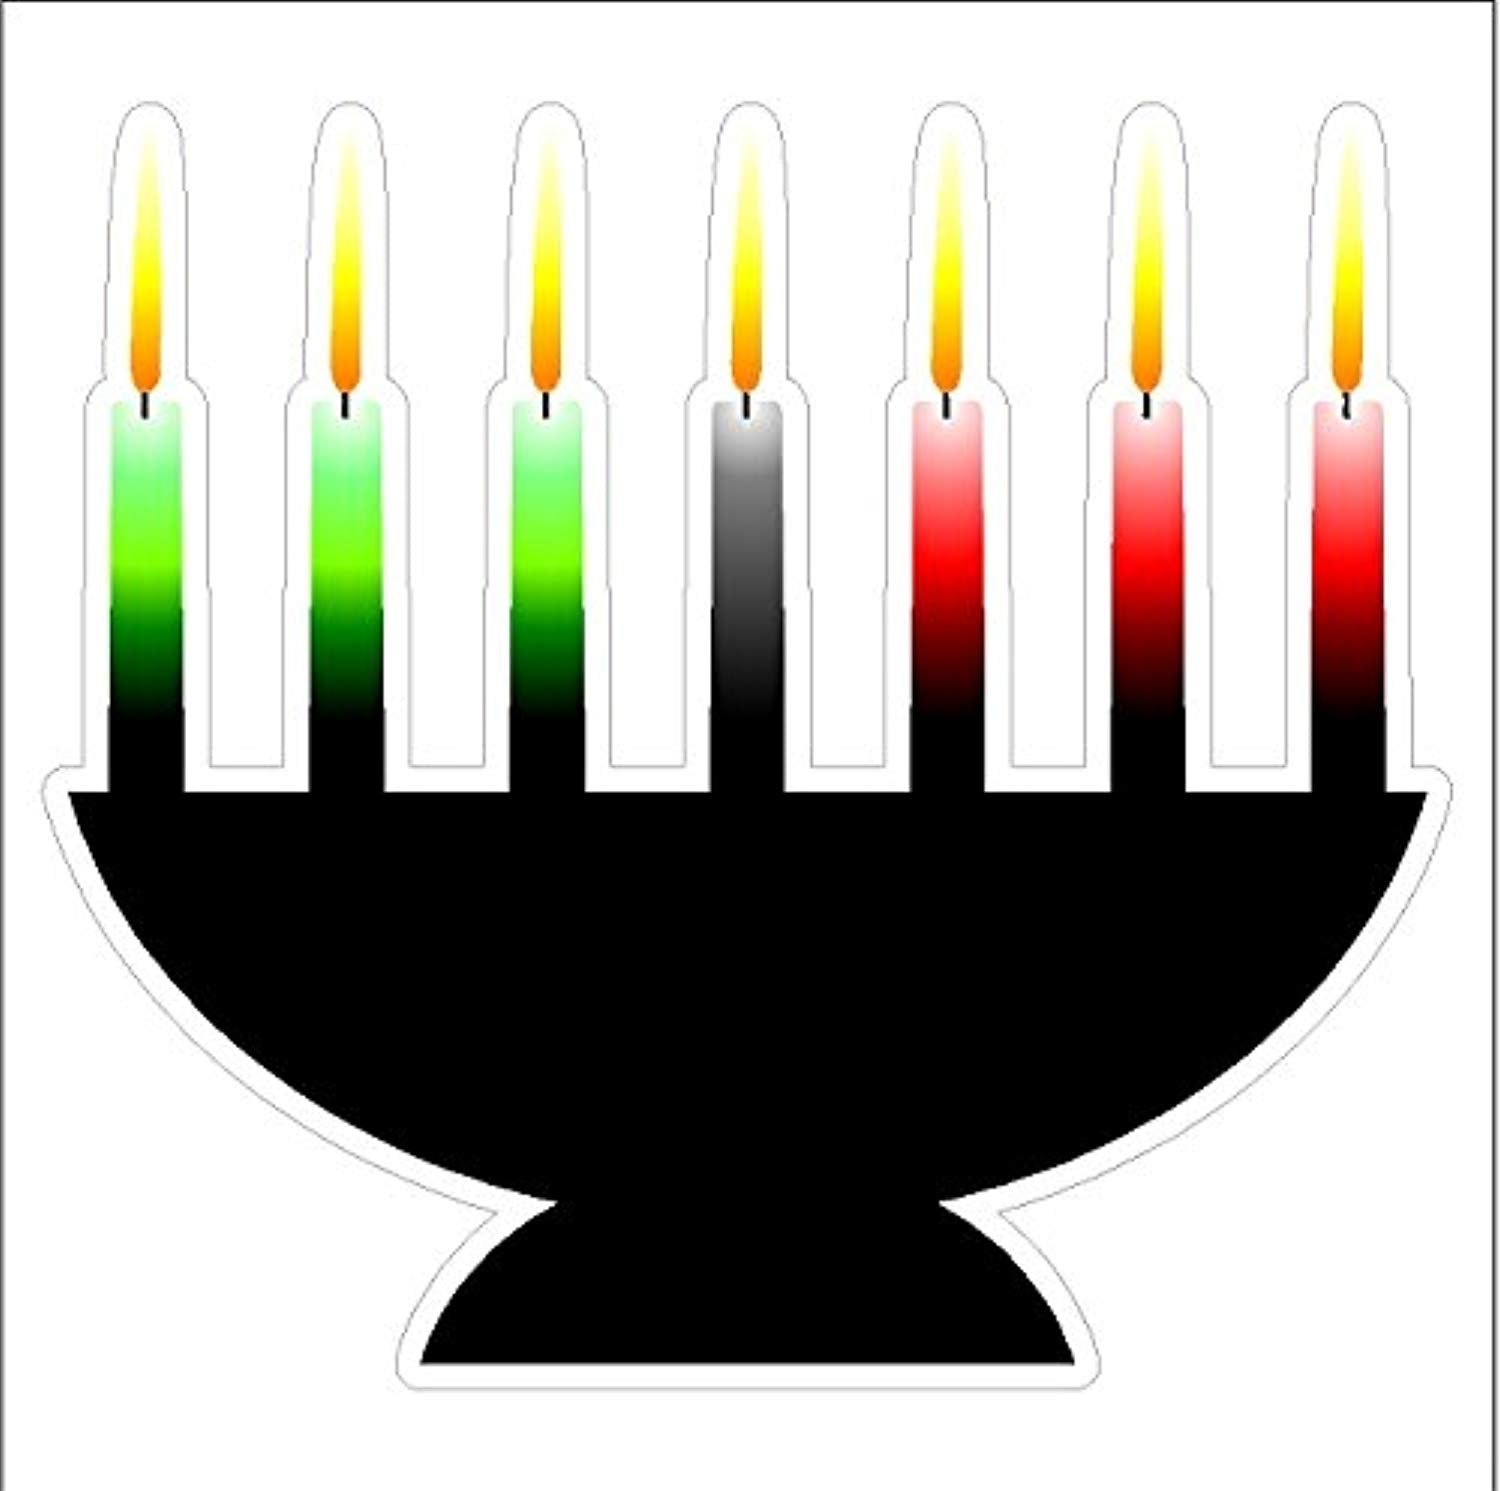 Kwanzaa Candles Static Cling Window Decal Removable and Reusable Holiday Cling - Ufumbuzi - Home